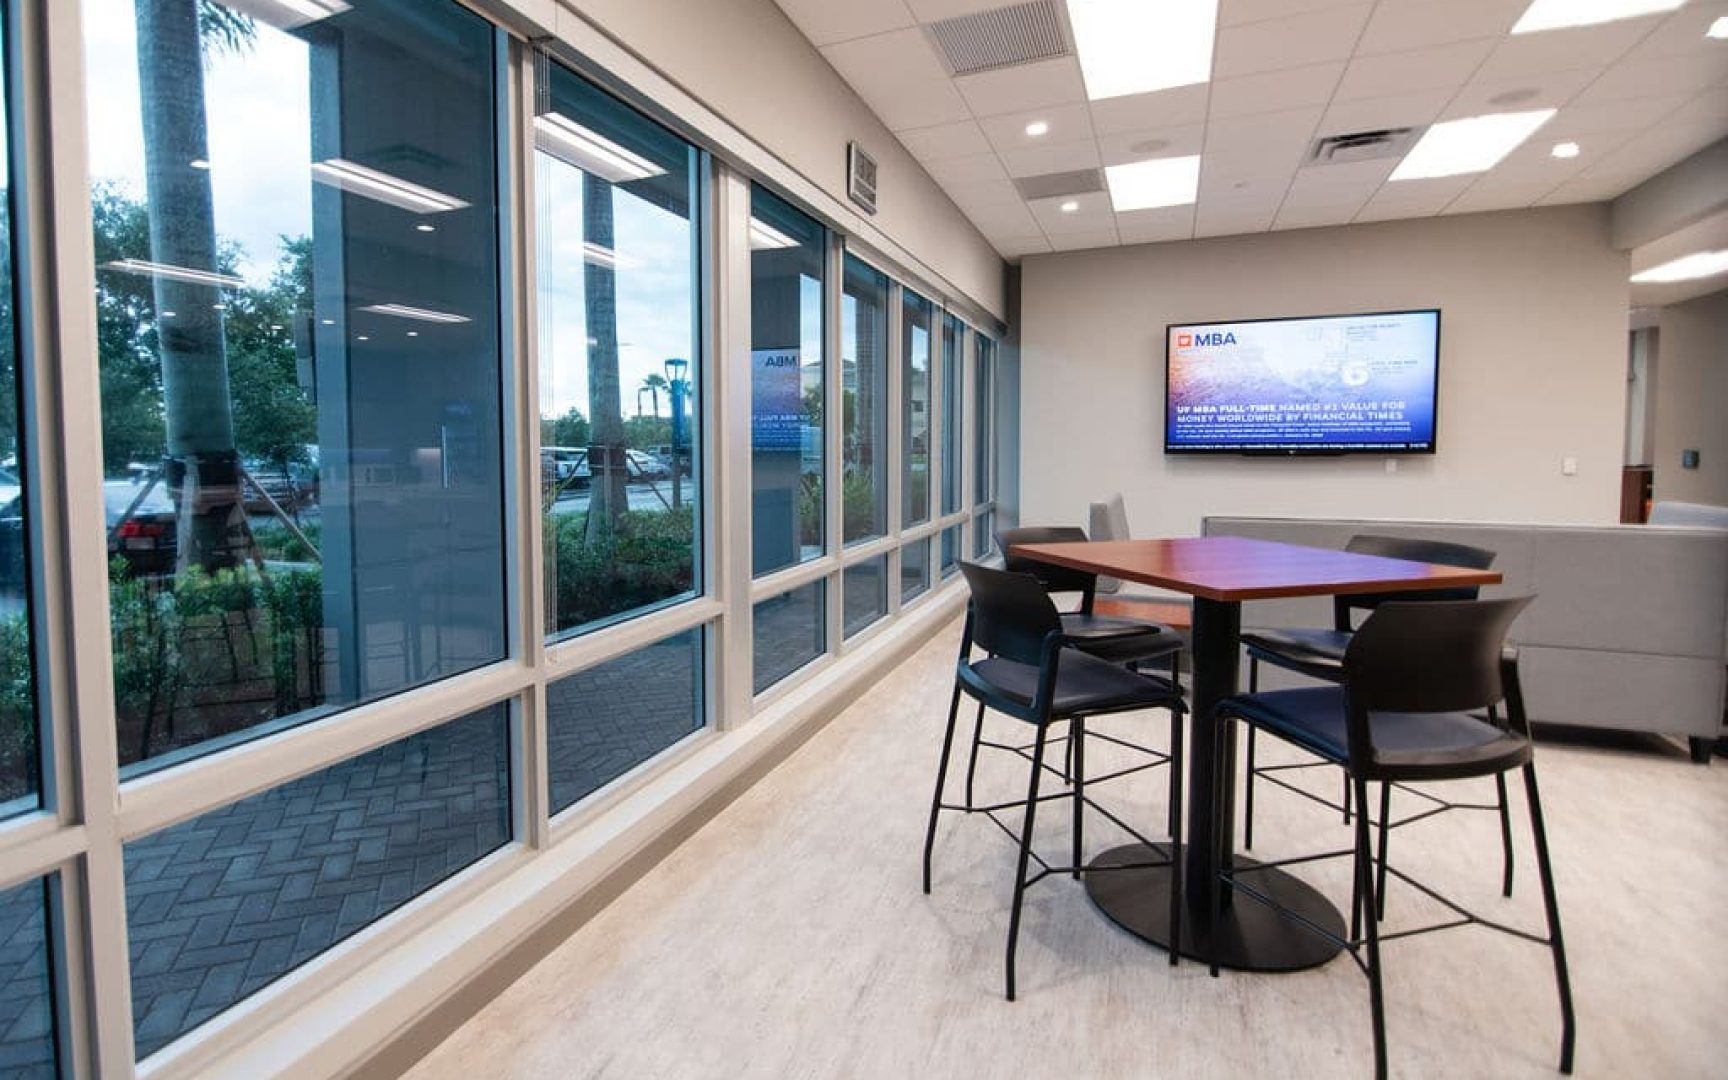 Lounge area with tables and couches for students in UF MBA South Florida Miramar location